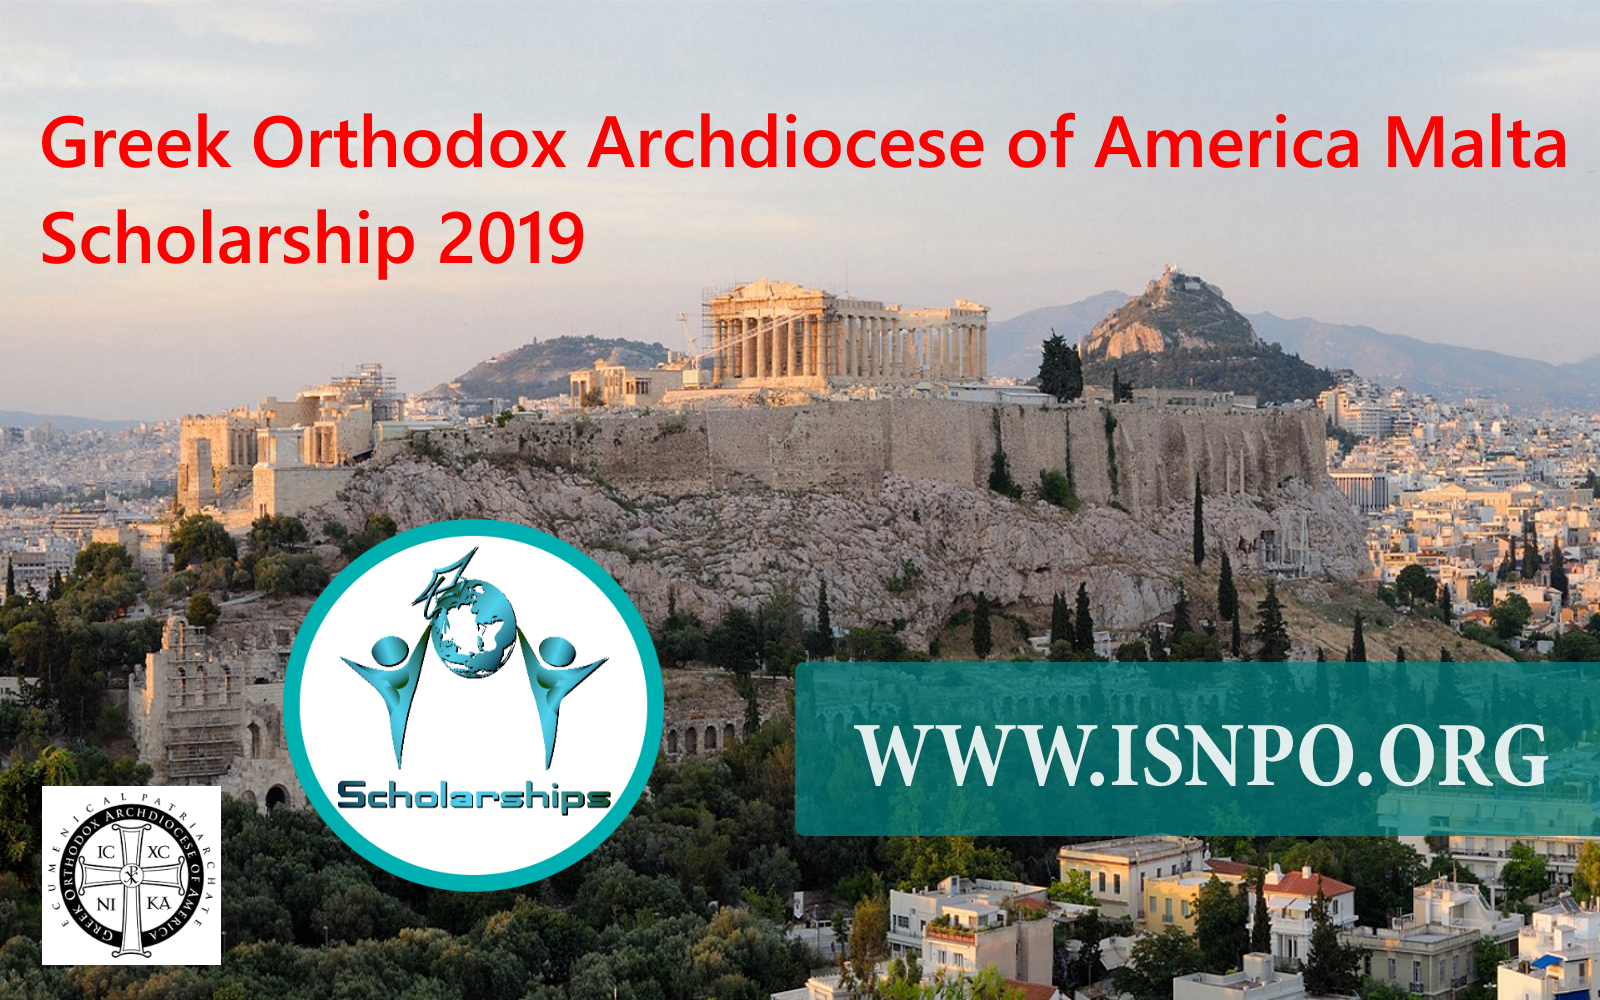 Greek Orthodox Archdiocese of America Malta Scholarship 2019